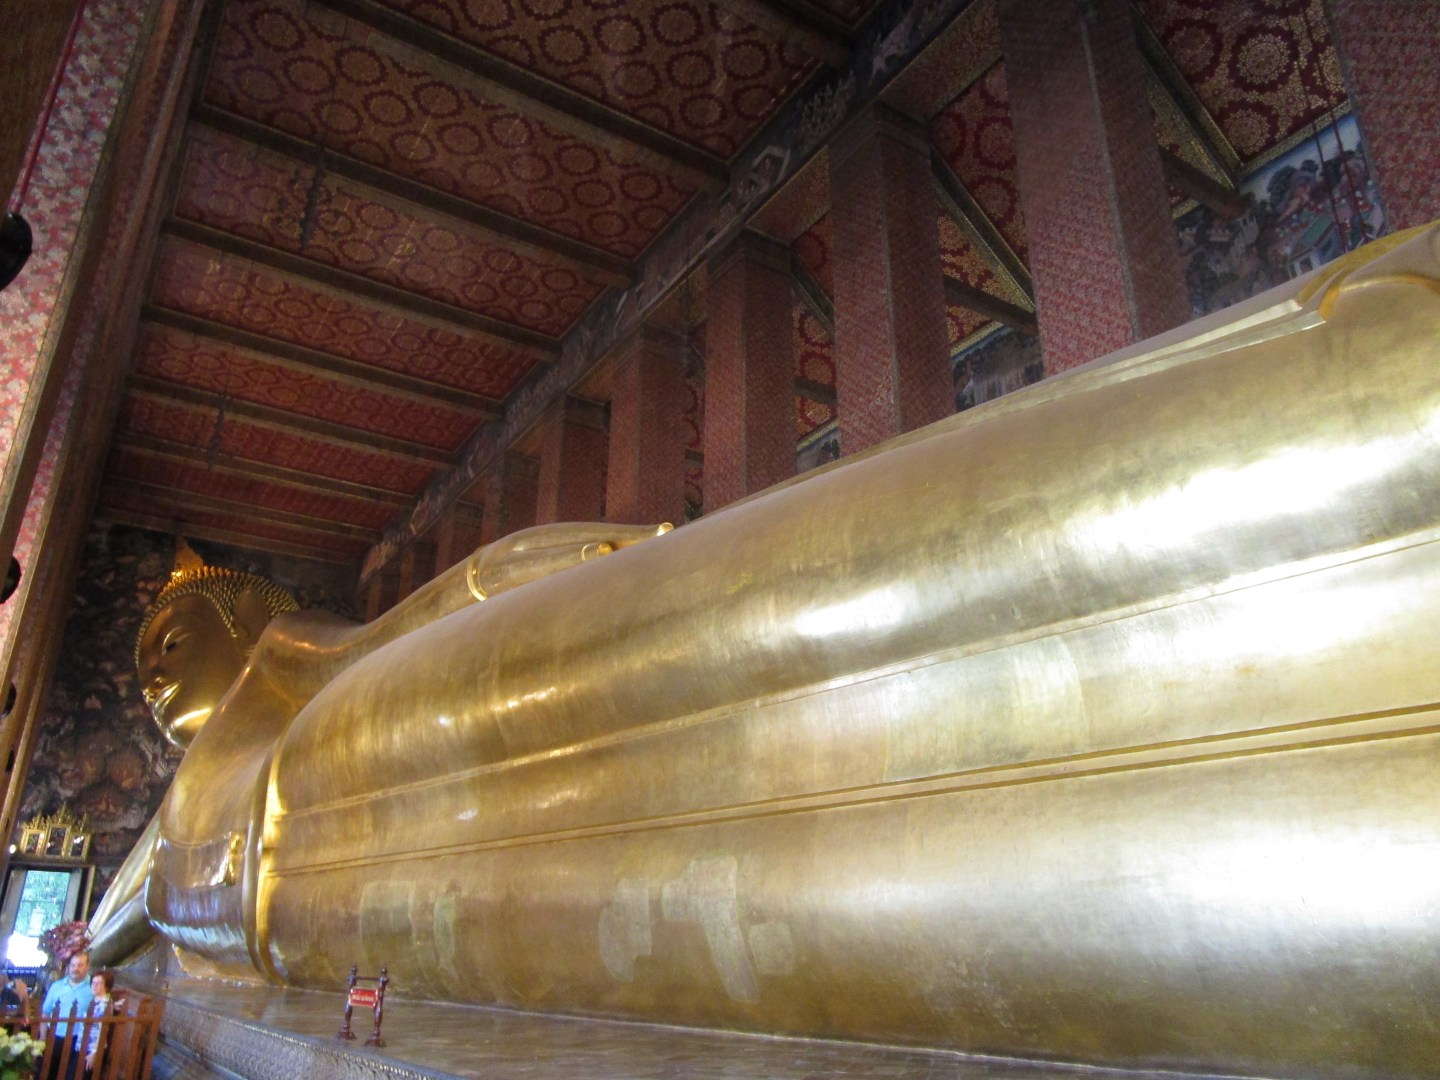 Reclining Buddha shows the enormity and length of a huge golden shrine